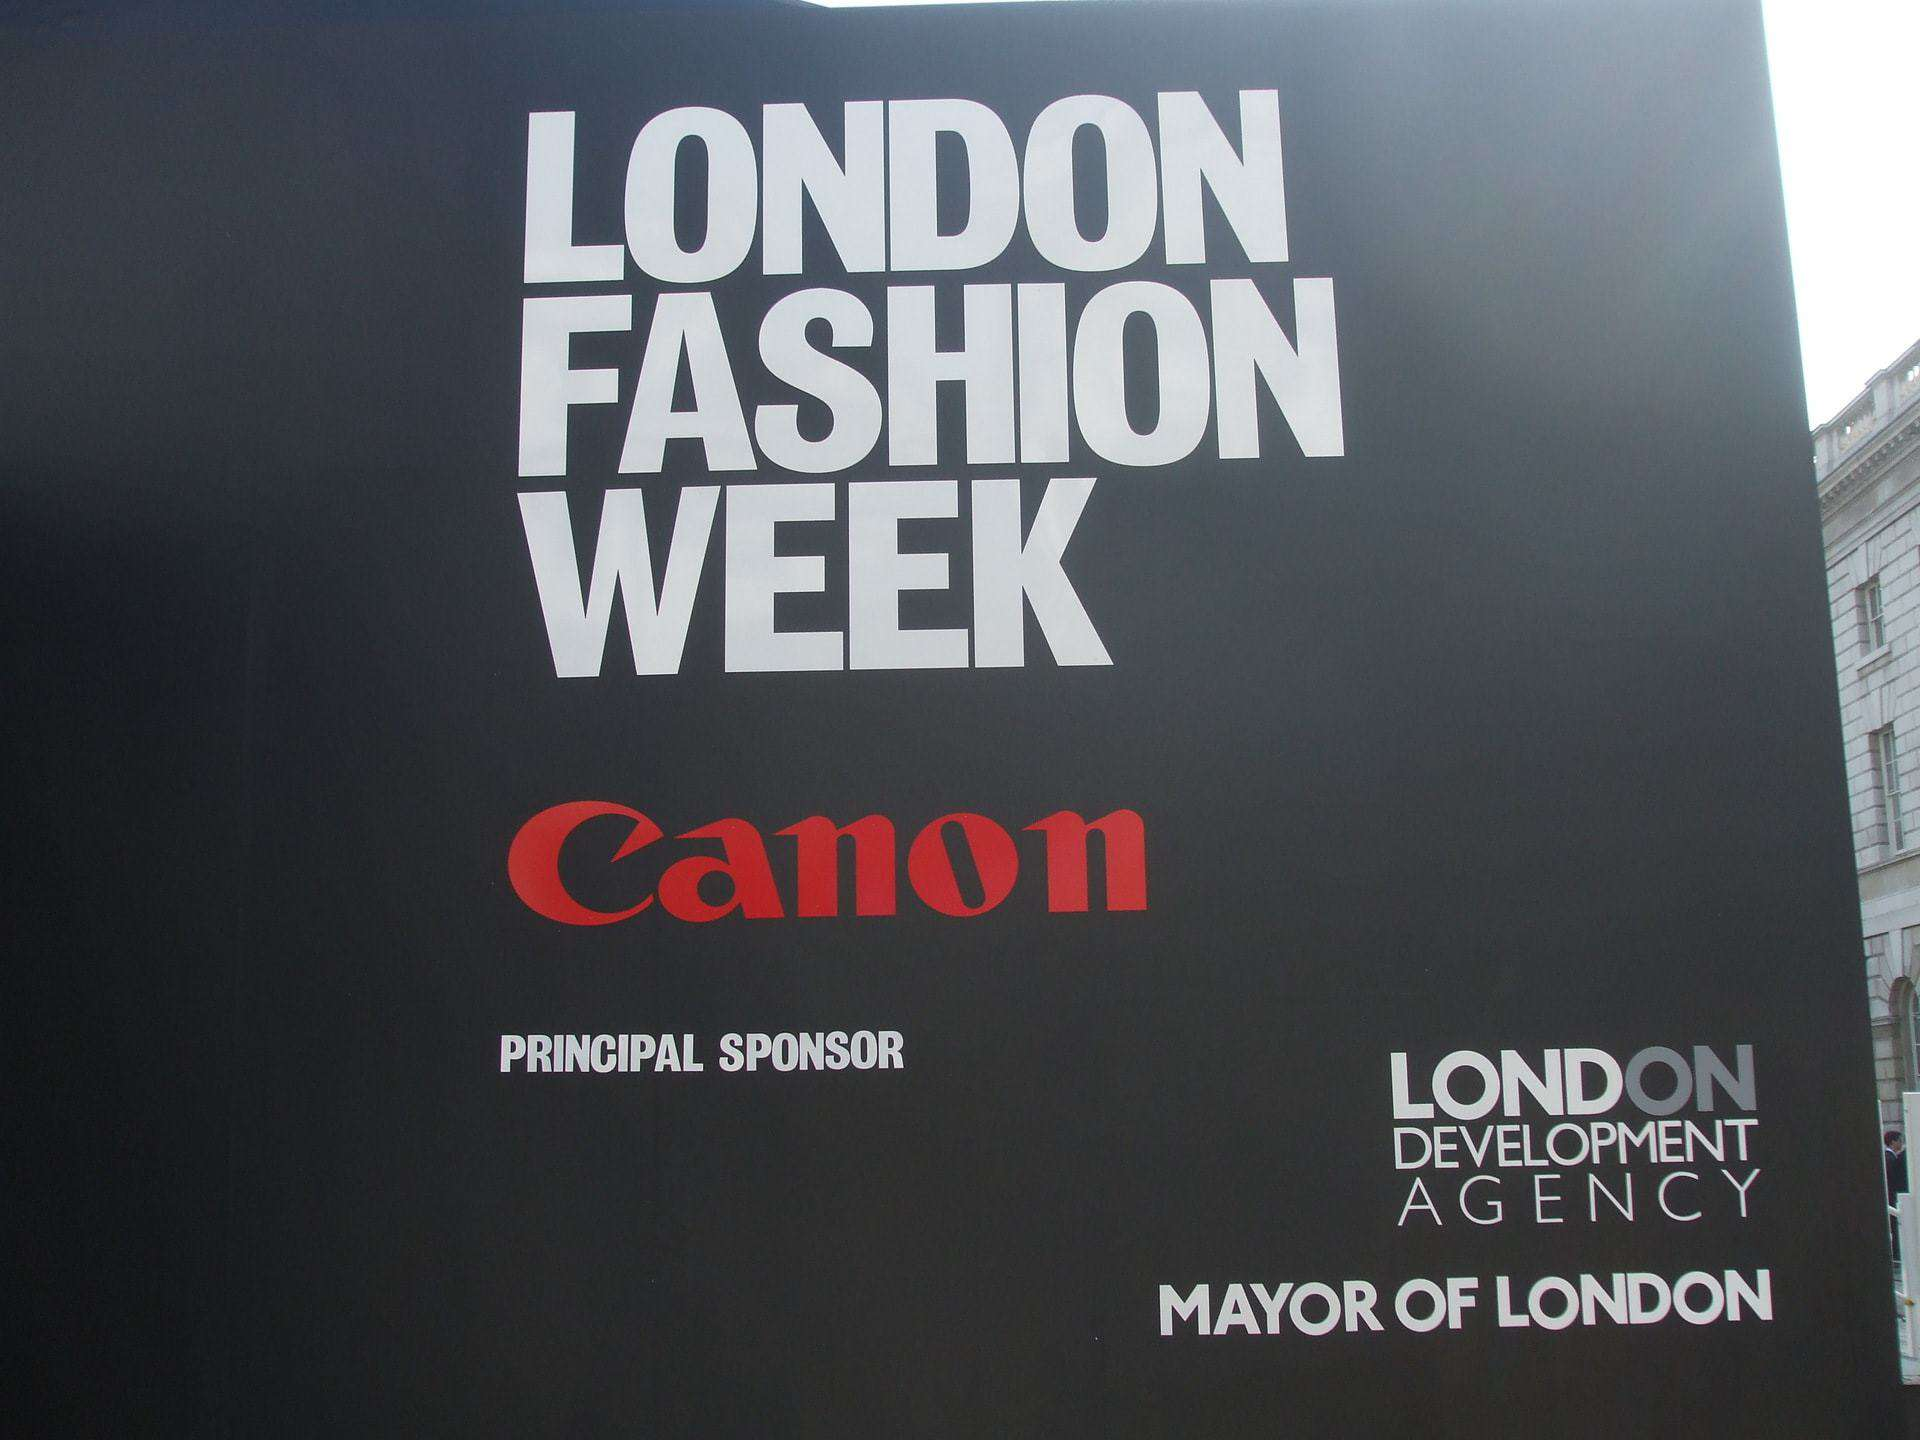 London Fashion Week launches